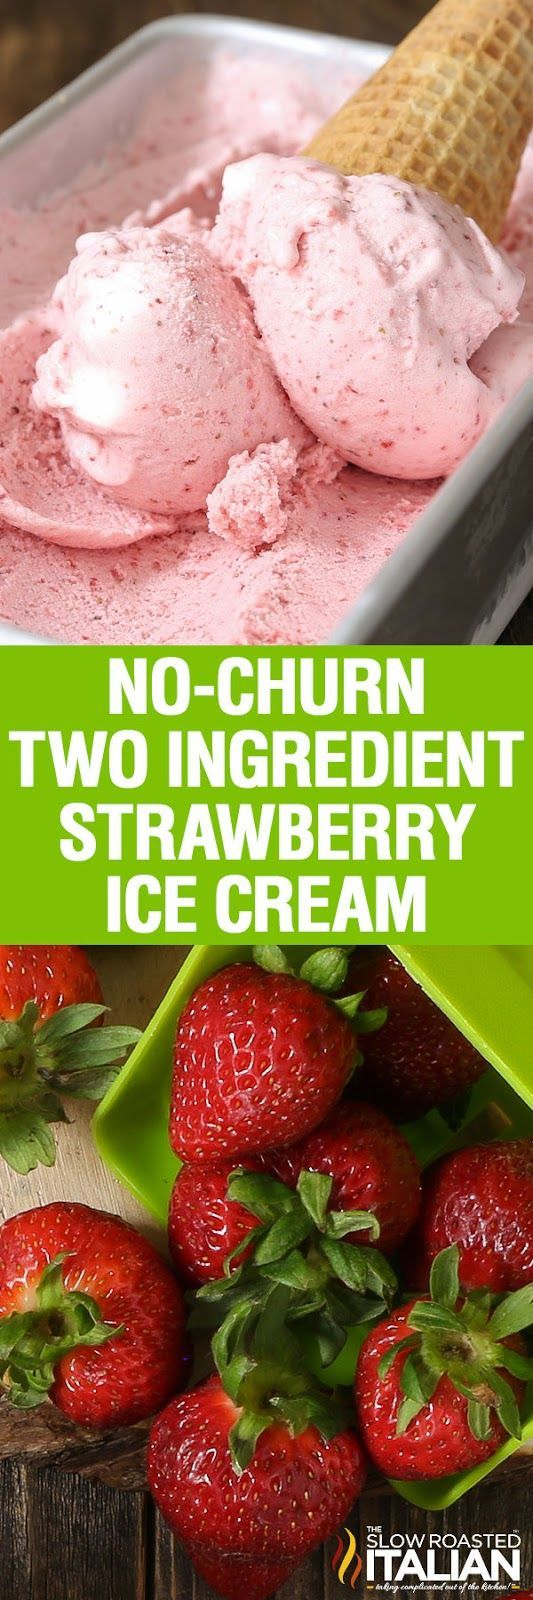 No-Churn 2-Ingredient Strawberry Ice Cream is thick, creamy and amazingly delicious. It is a blissful ice cream speckled with fresh strawberries and it's so good you may never get store bought again! Partnership with /indelight/ #Idelight